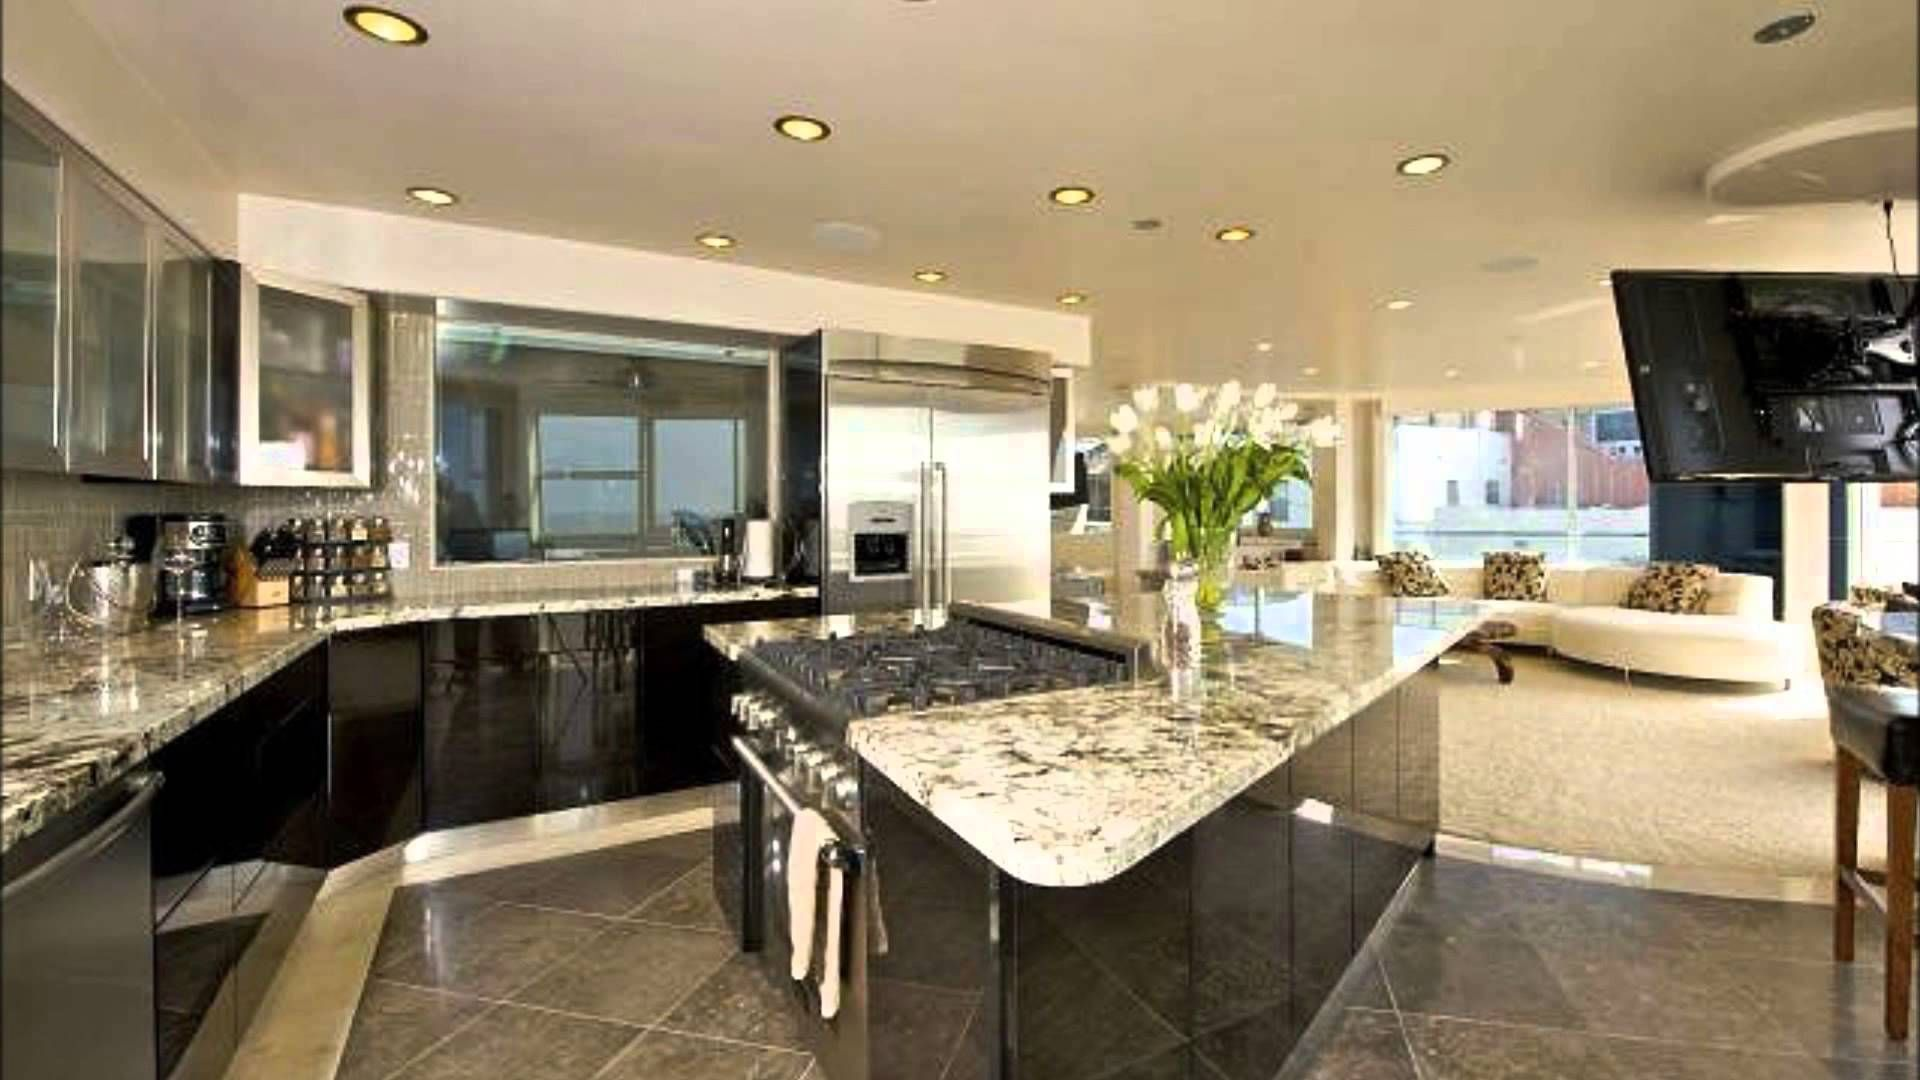 Uncategorized Kitchen Ideas Design our blog channel fresh ideas for kitchen design description from lopermedia